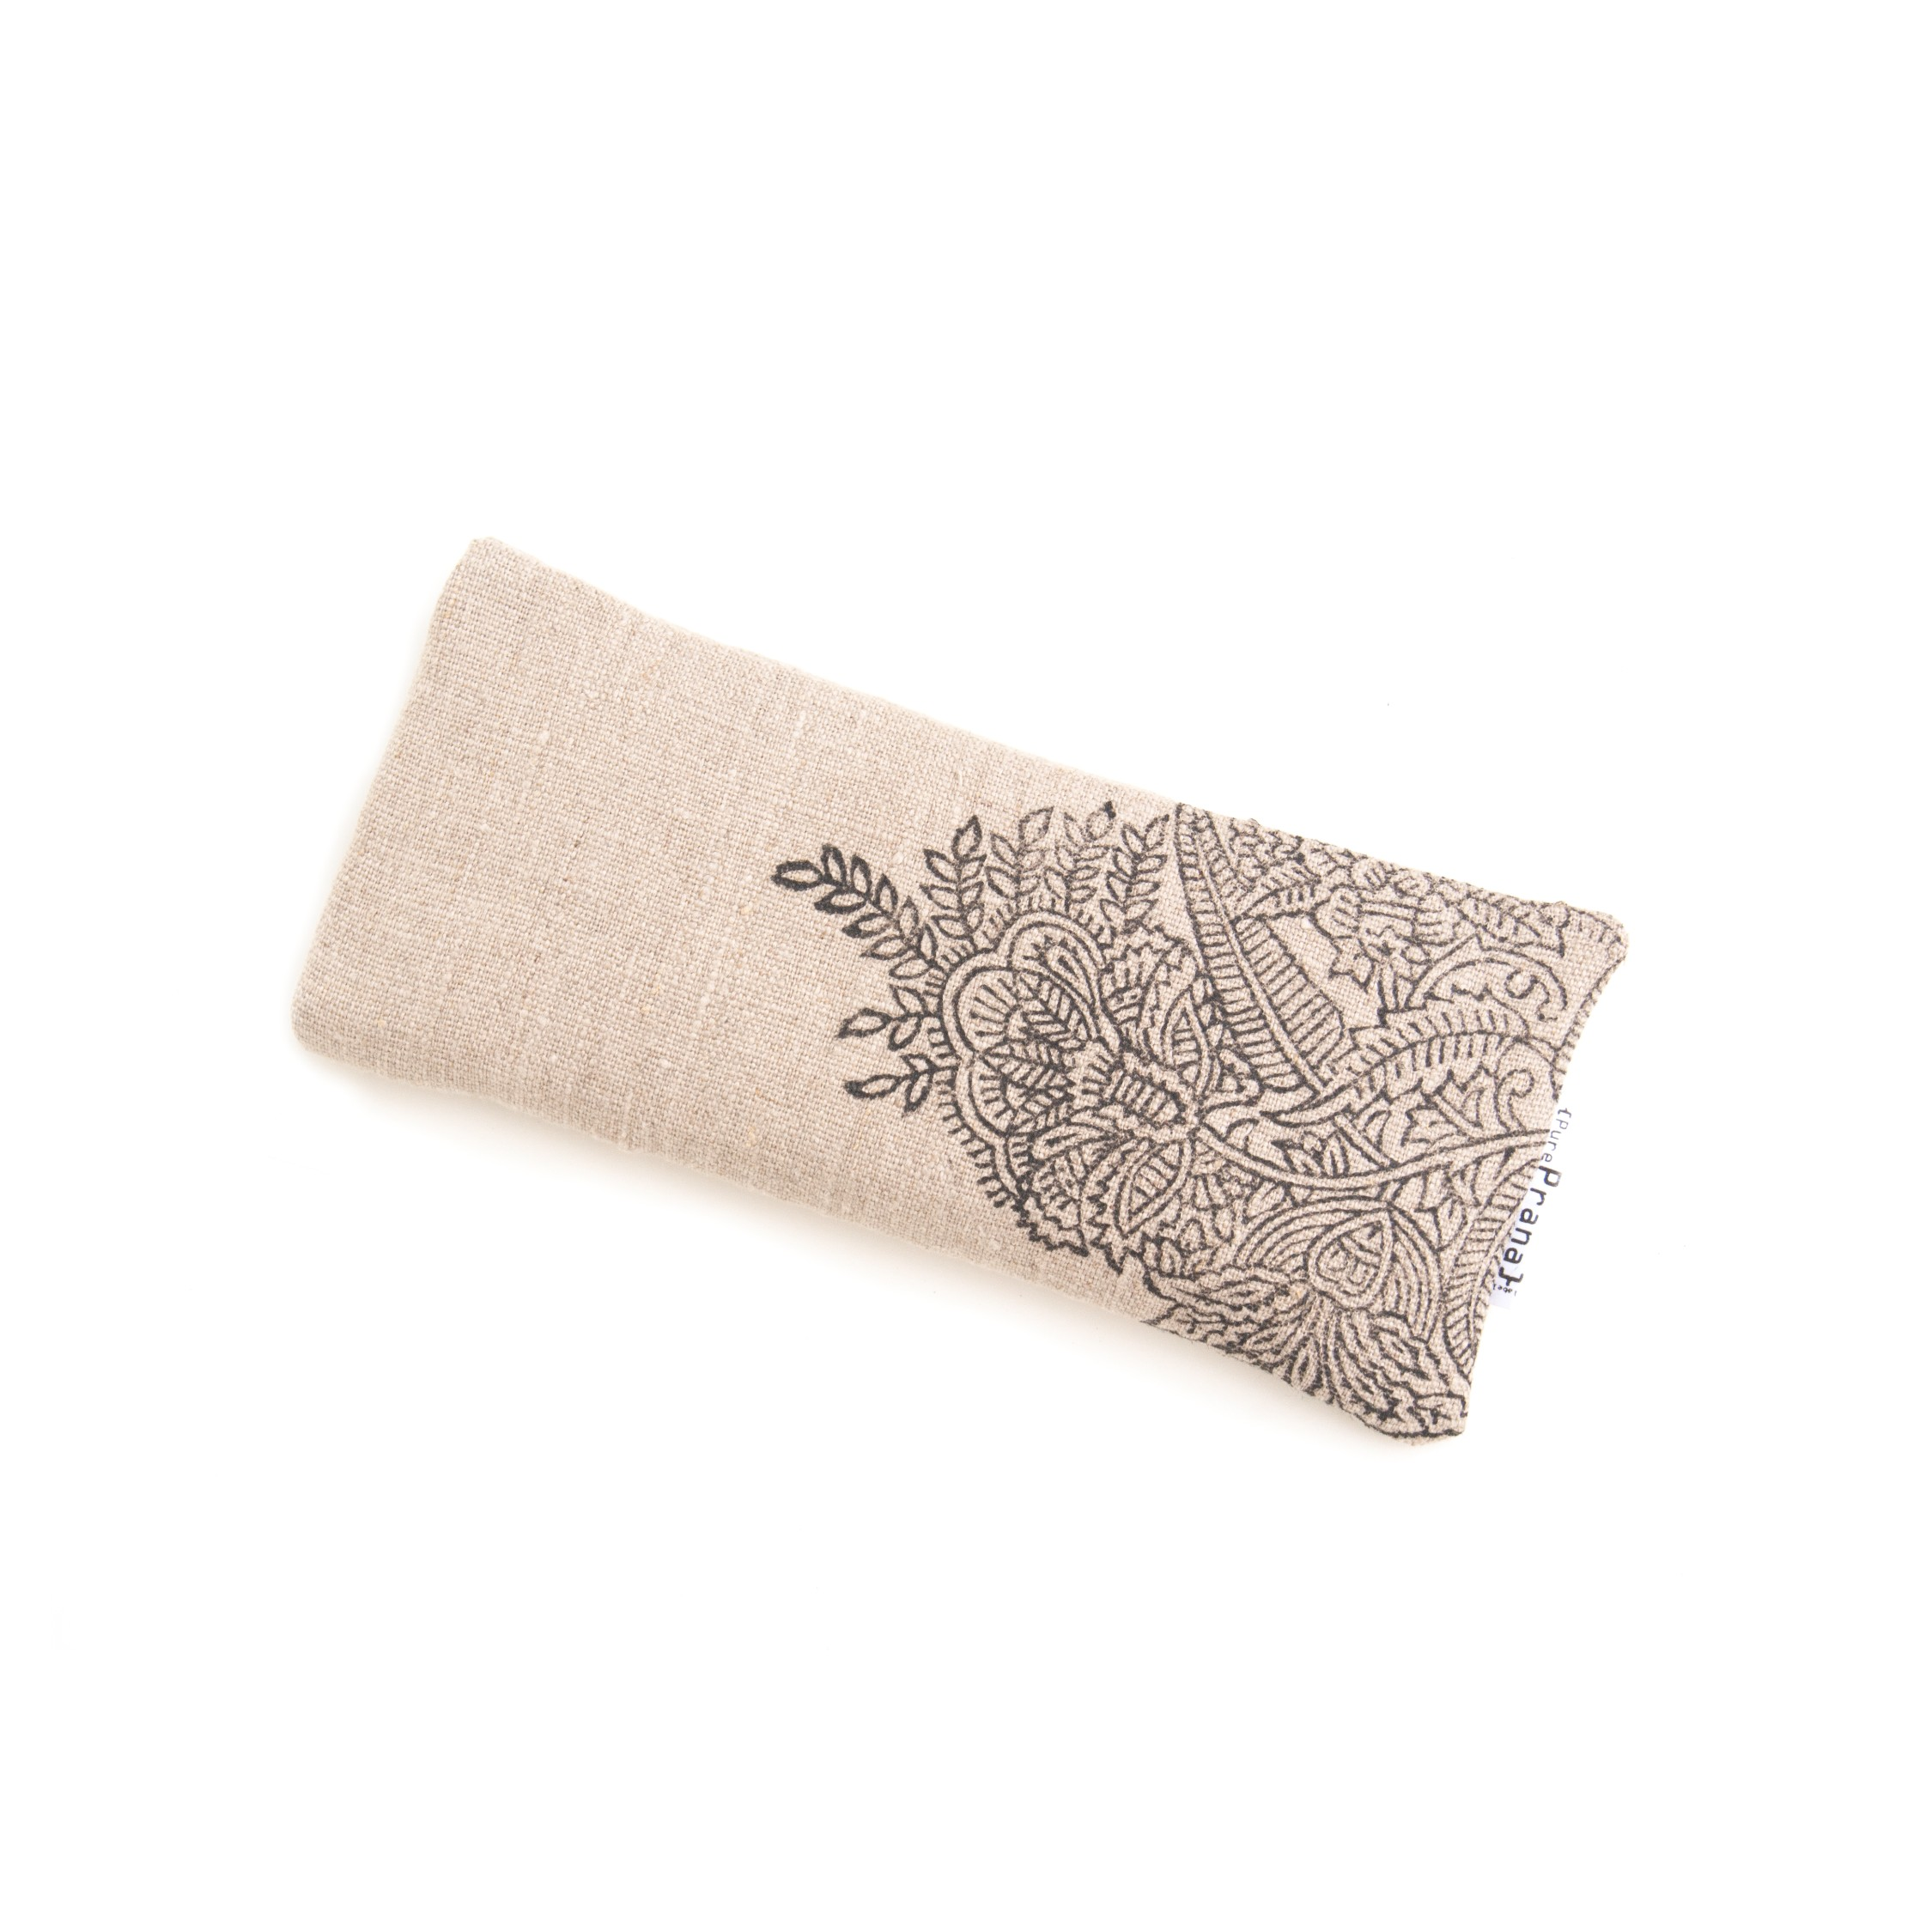 Lavender eye pillow by Pure Prana Label, filled with amethyst quartz.